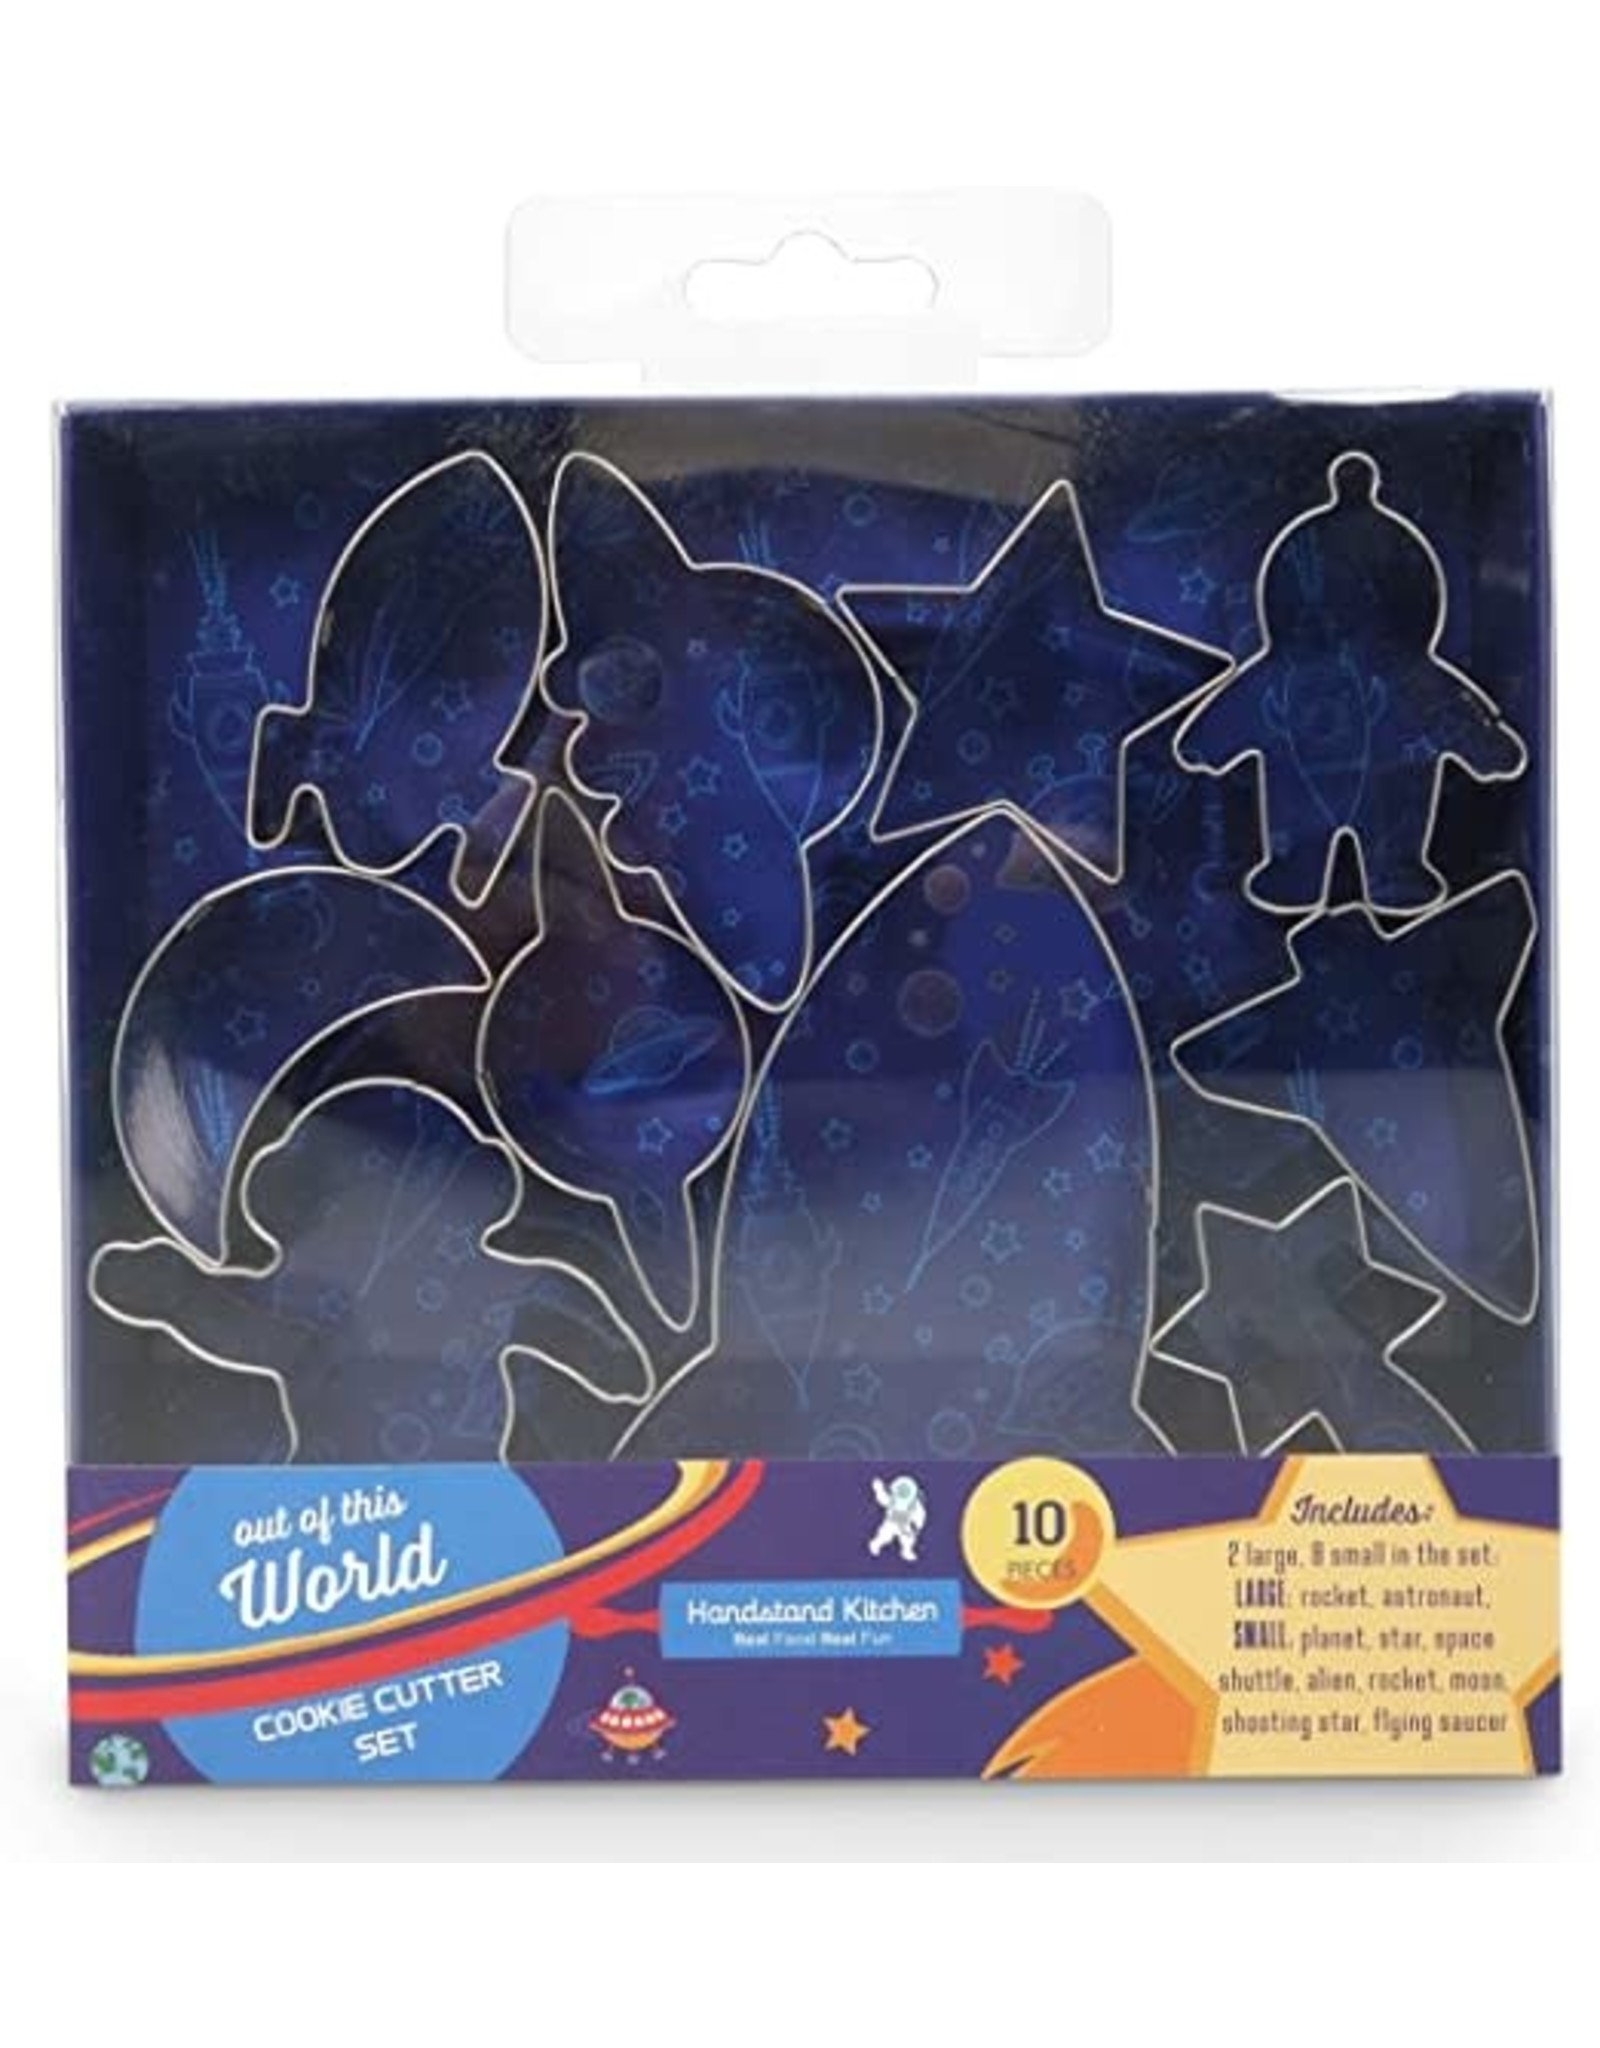 Handstand Kitchen Out of This World Cookie Cutter, 10 Piece Set